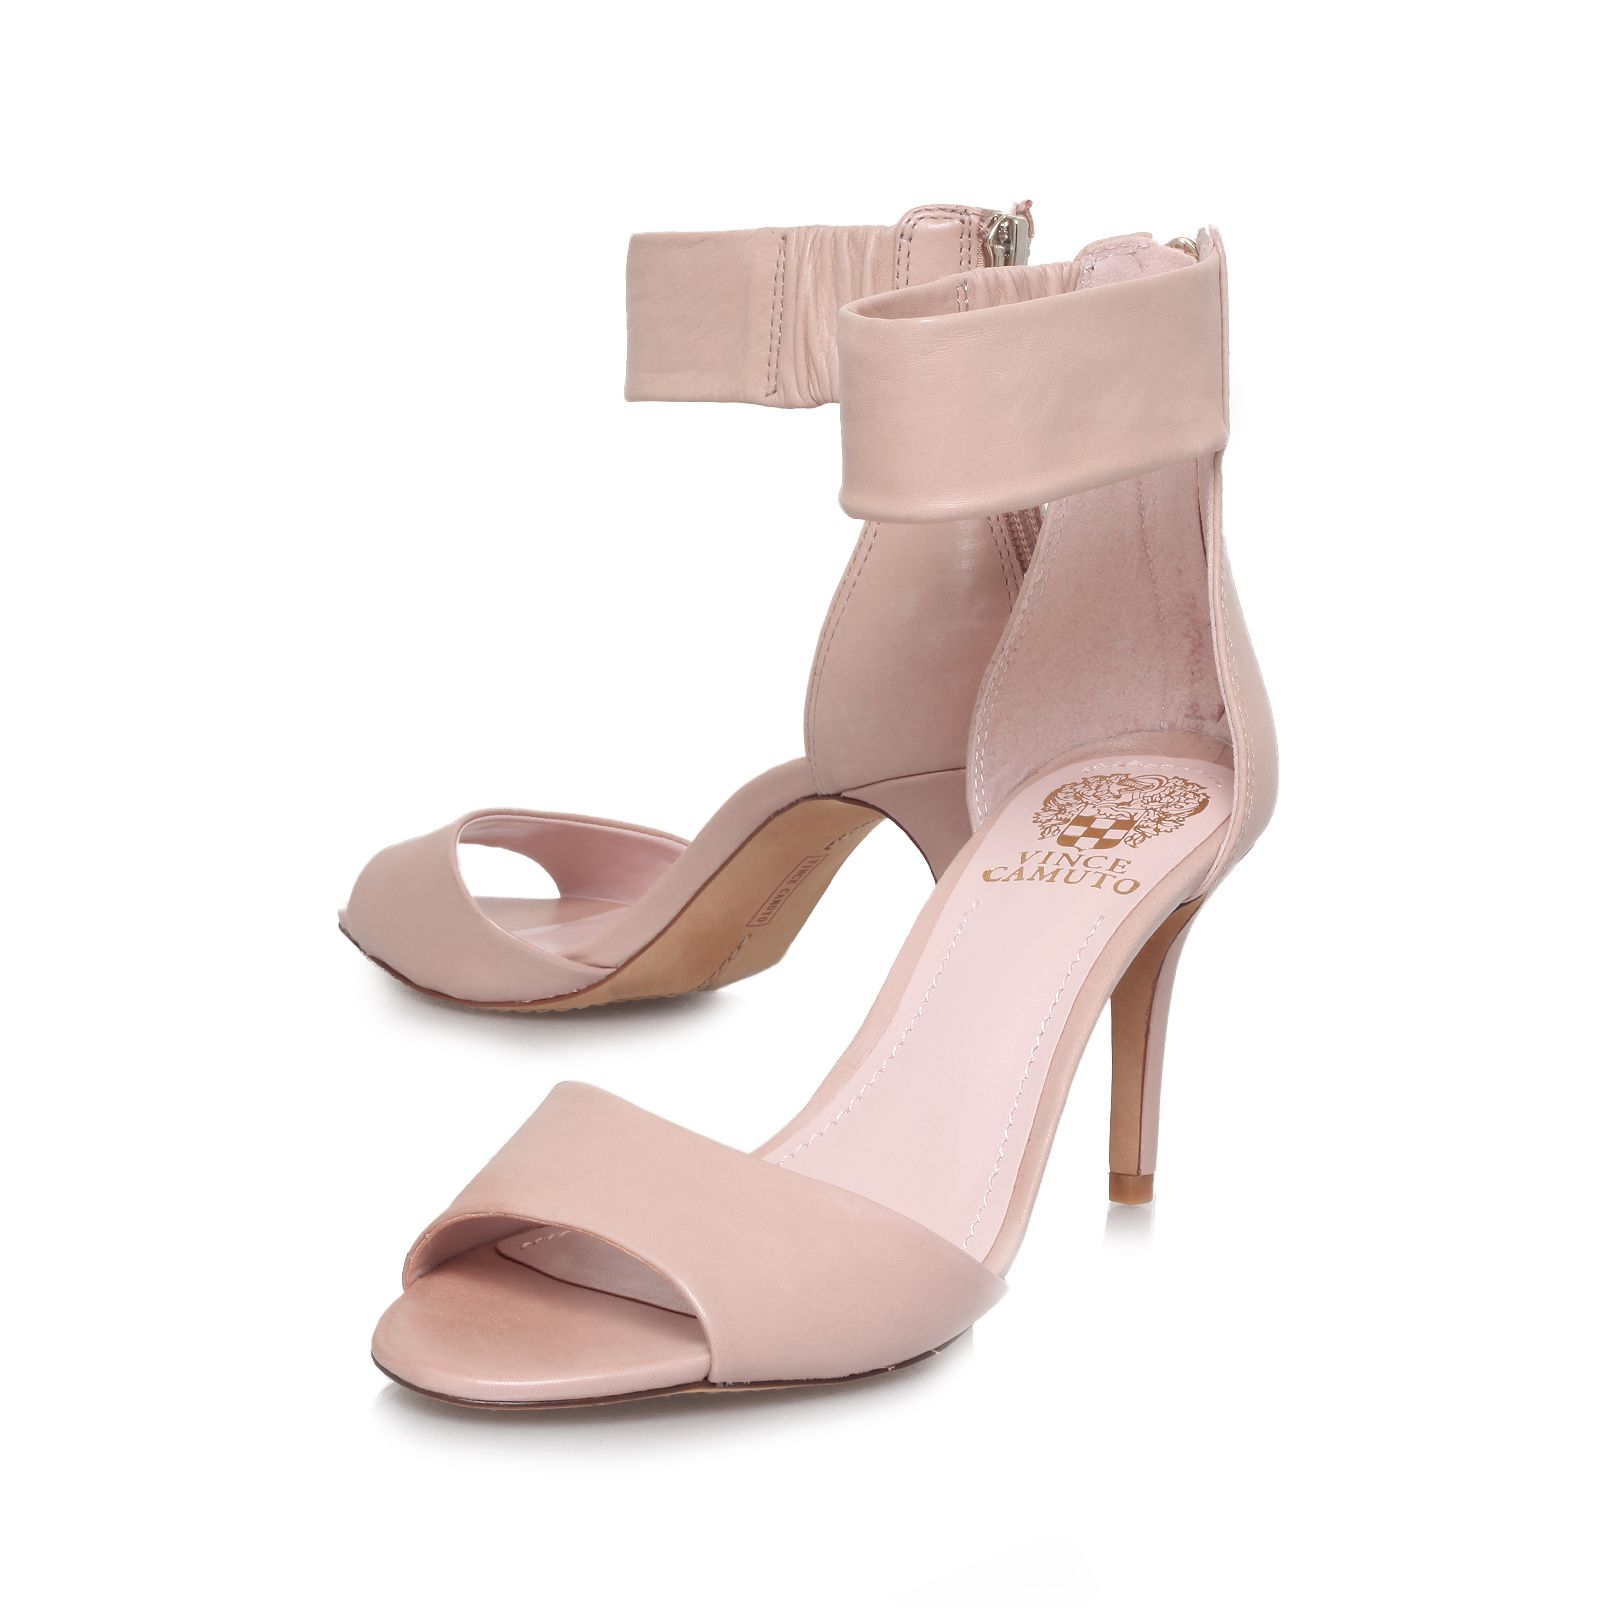 Noris mid heel sandals